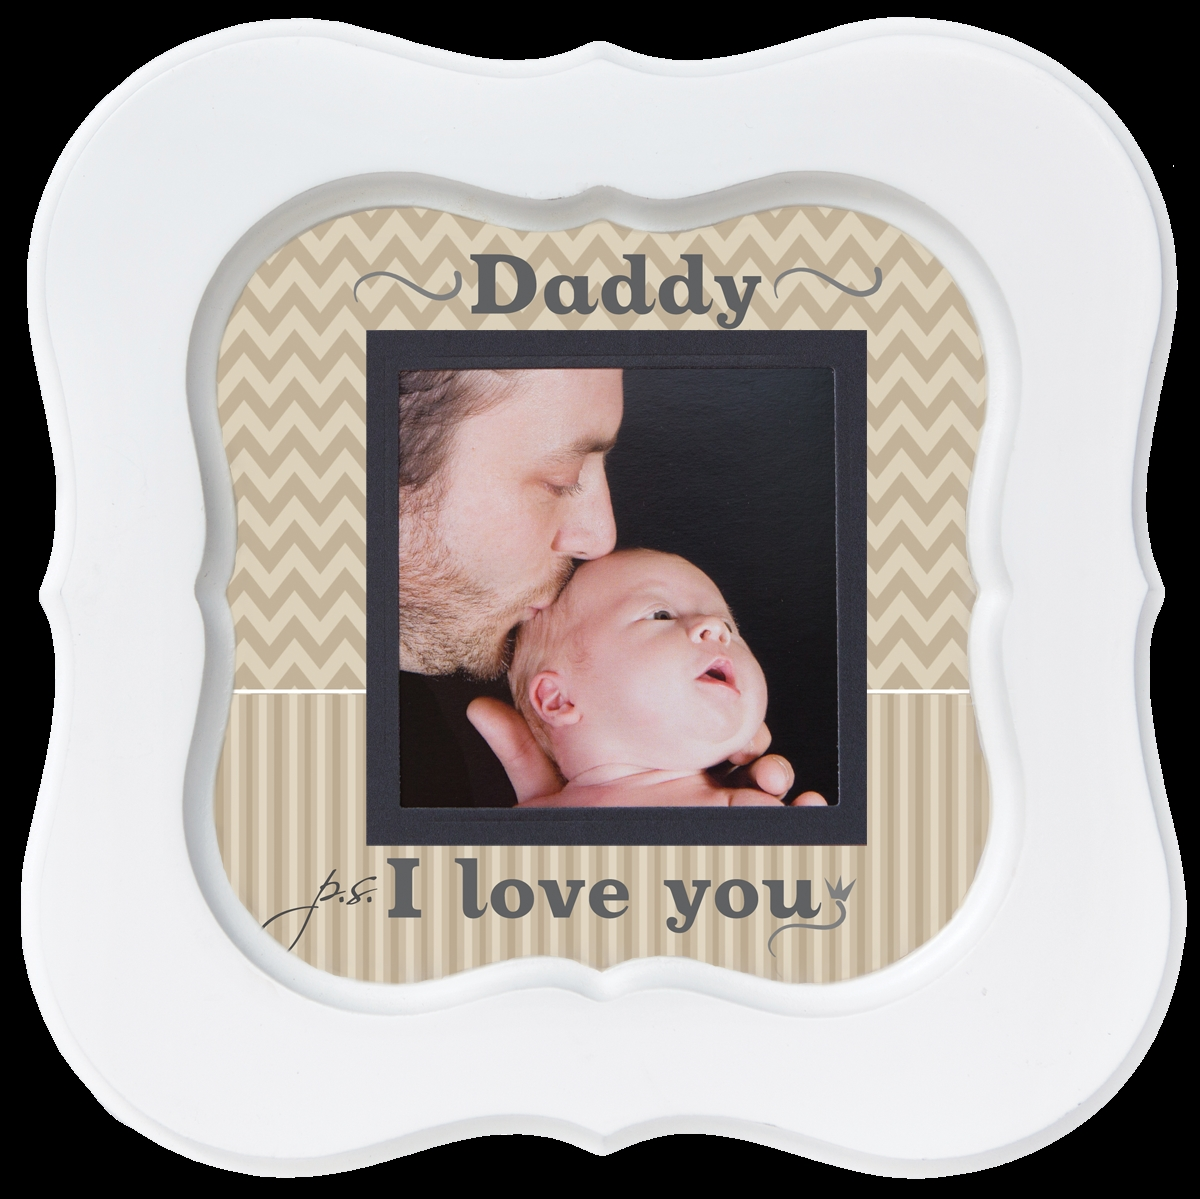 PS I Love You Dad Photo Frame